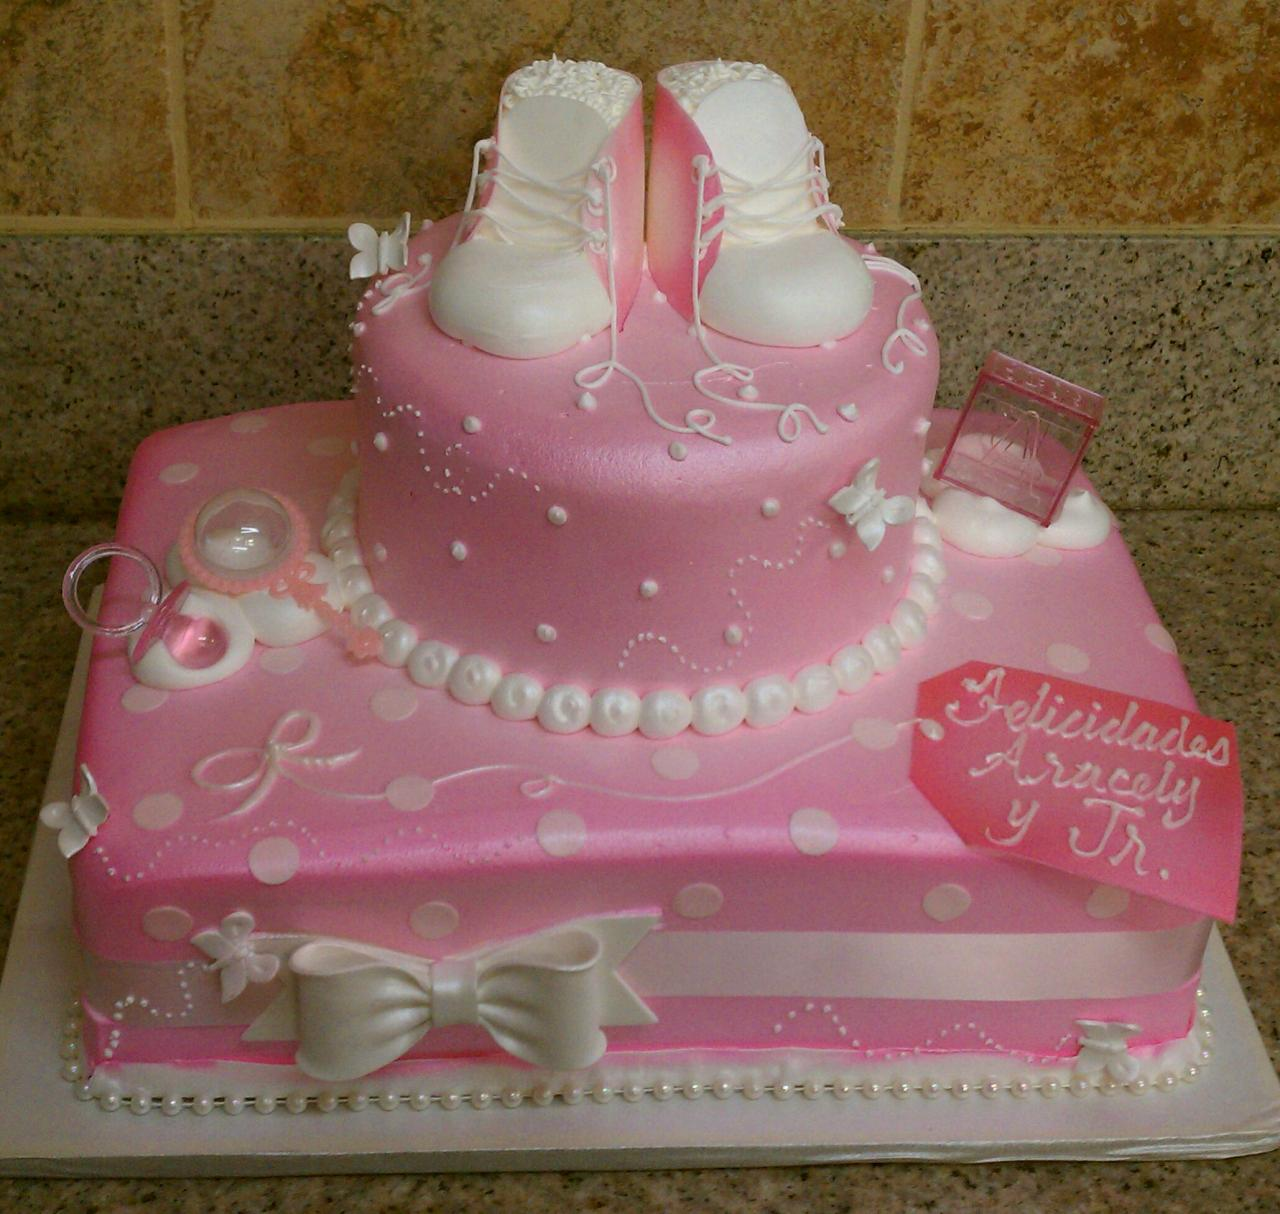 Cake Design Baby Shower Girl : 70 Baby Shower Cakes and Cupcakes Ideas